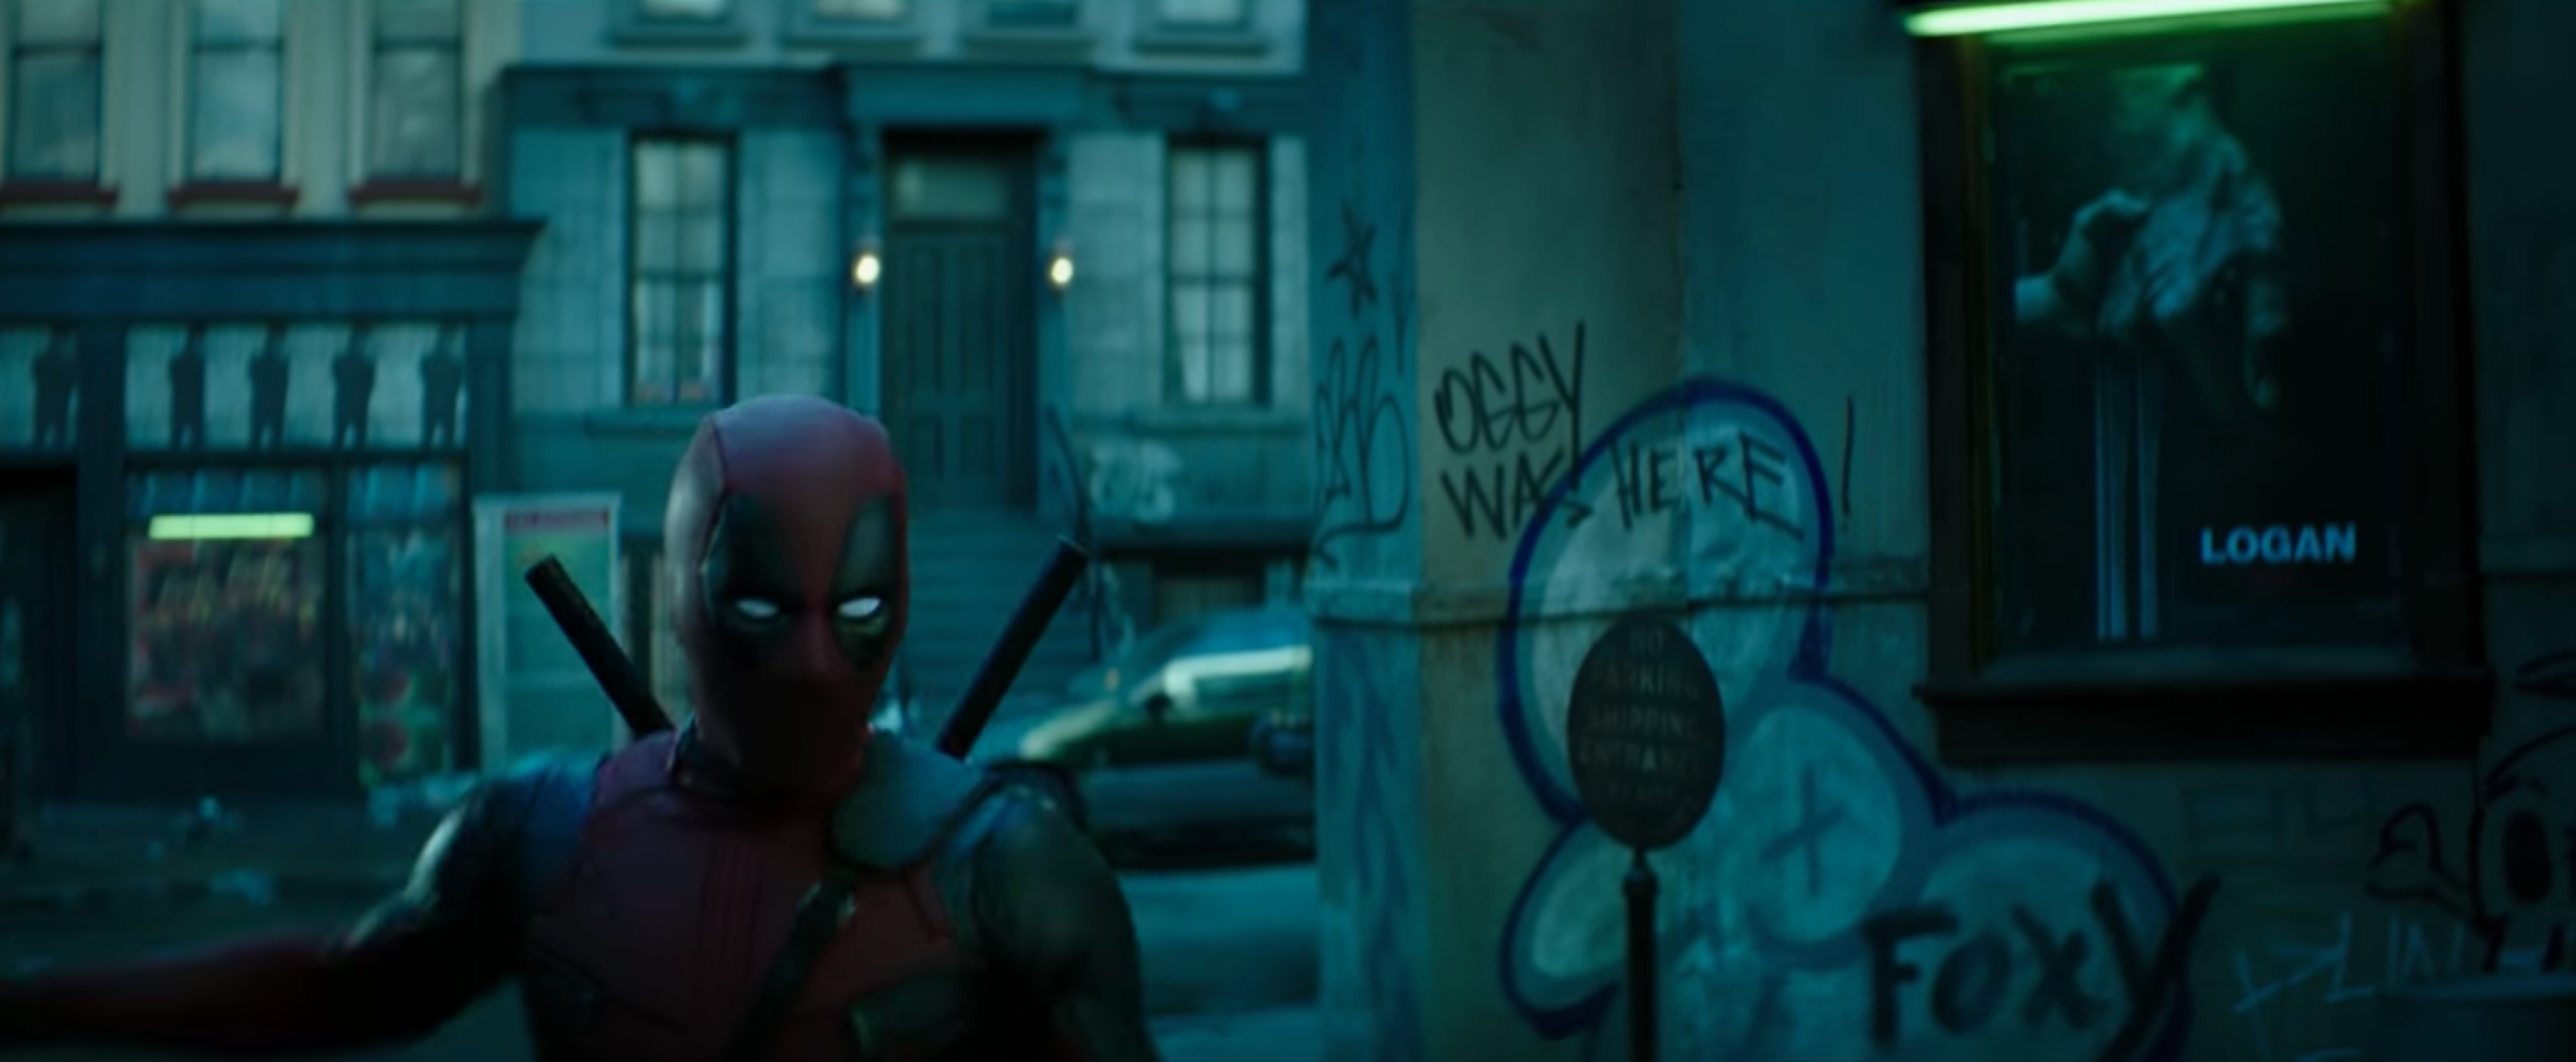 Deadpool 2 Bluray release date cast trailers and news The Merc with a Mouth is coming again and this time hes bringing a friend the timetravelling